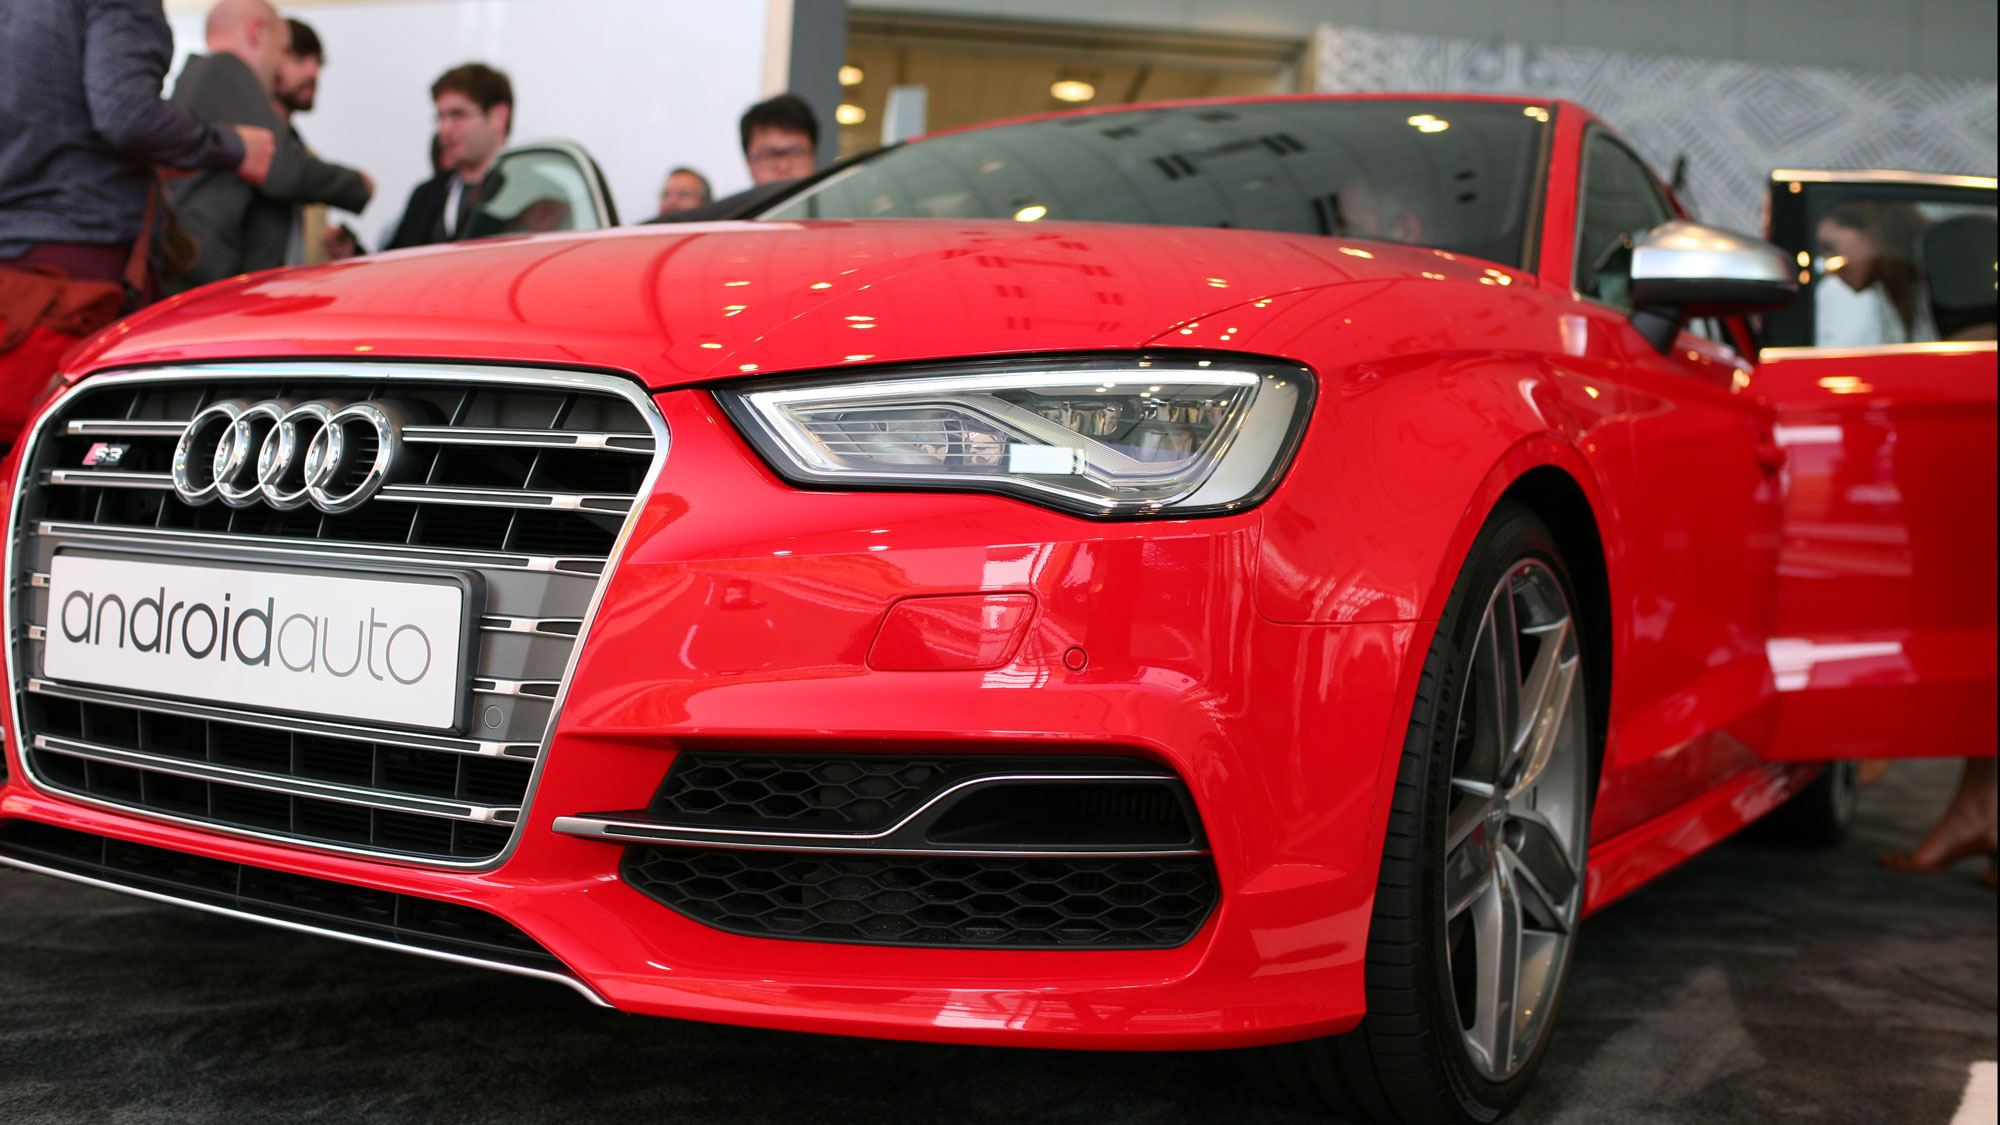 Hands on with the Audi A3 with Android Auto - The Next Web